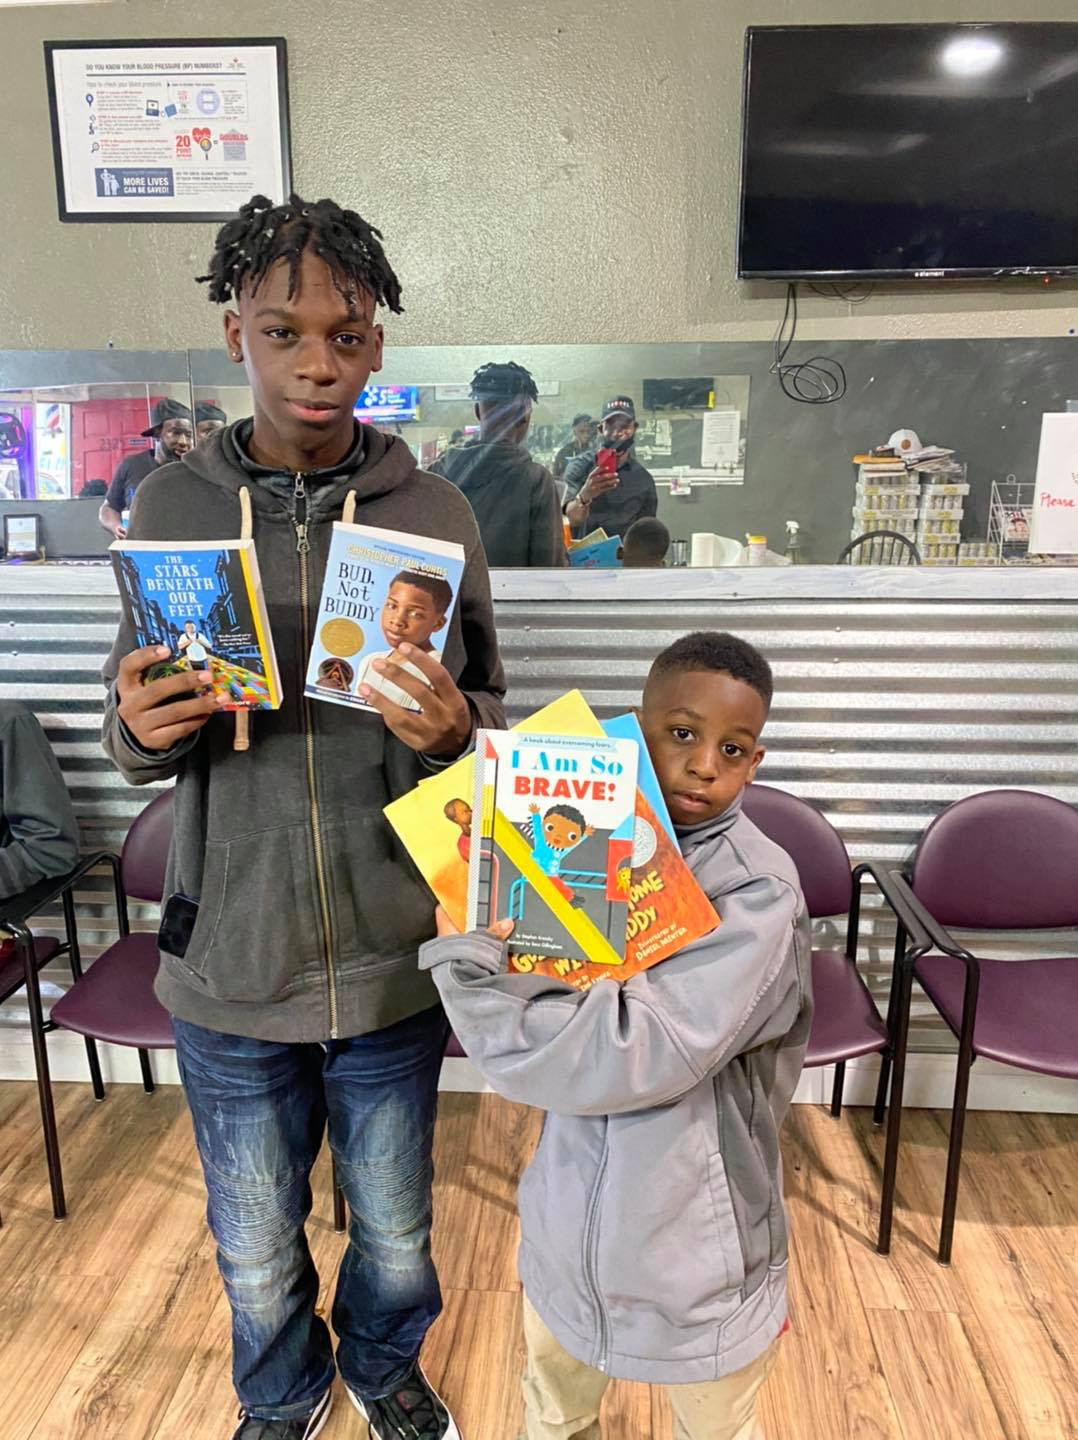 Two boys holding up multiple copies of books